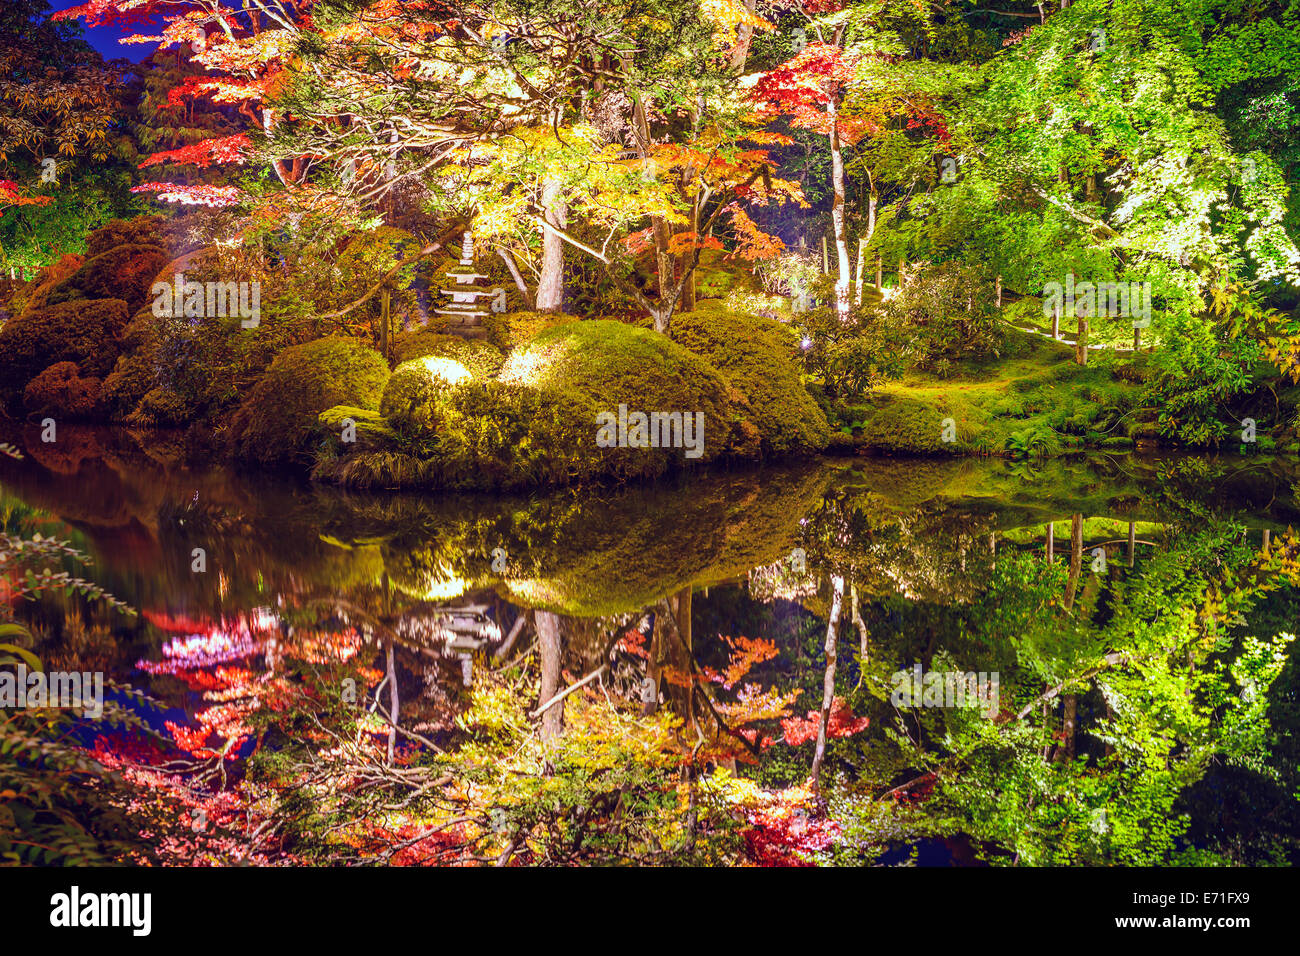 Nikko, Japan at Shoyo-en garden in the autumn. - Stock Image